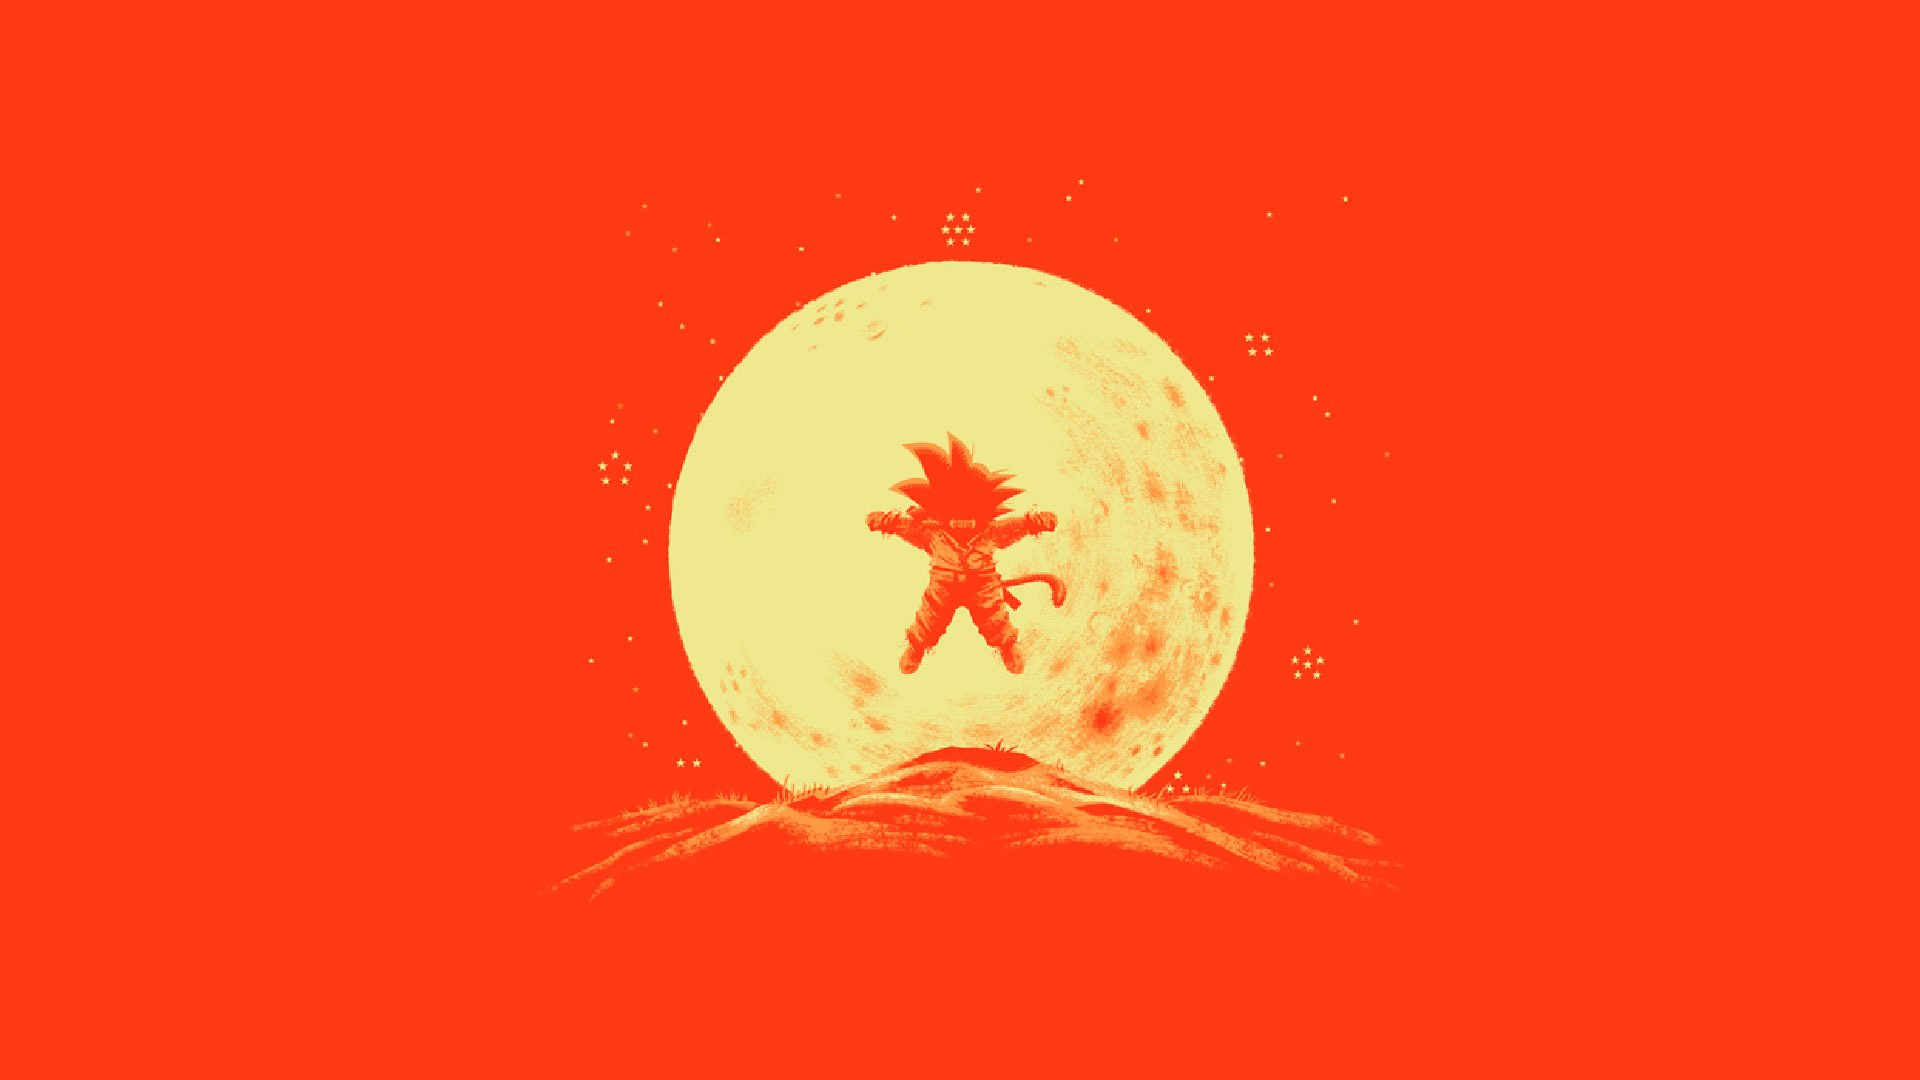 Goku wallpaper that was on frontpage earlier 1920x1080   Imgur 1920x1080